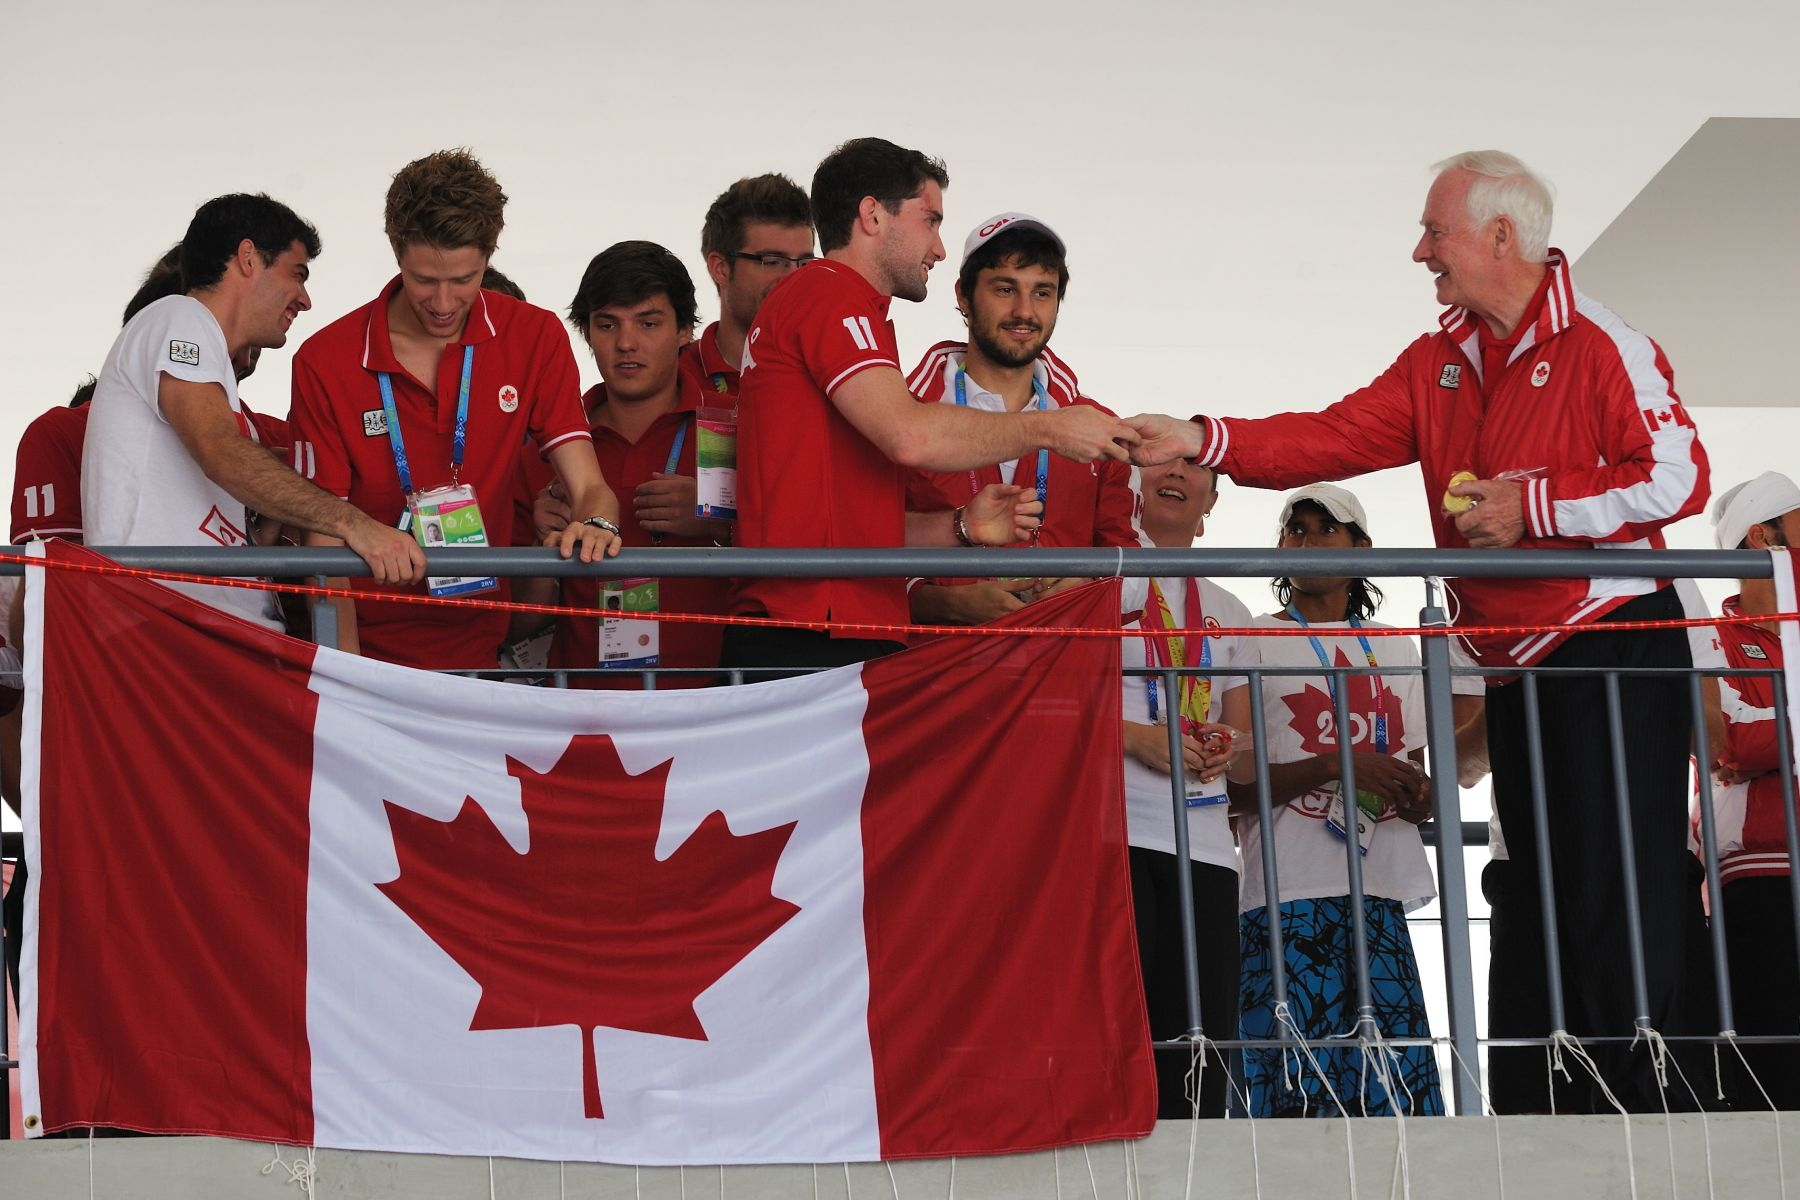 He proudly distributed chocolate medals, a tradition within Team Canada, to athletes who won medals the day before.